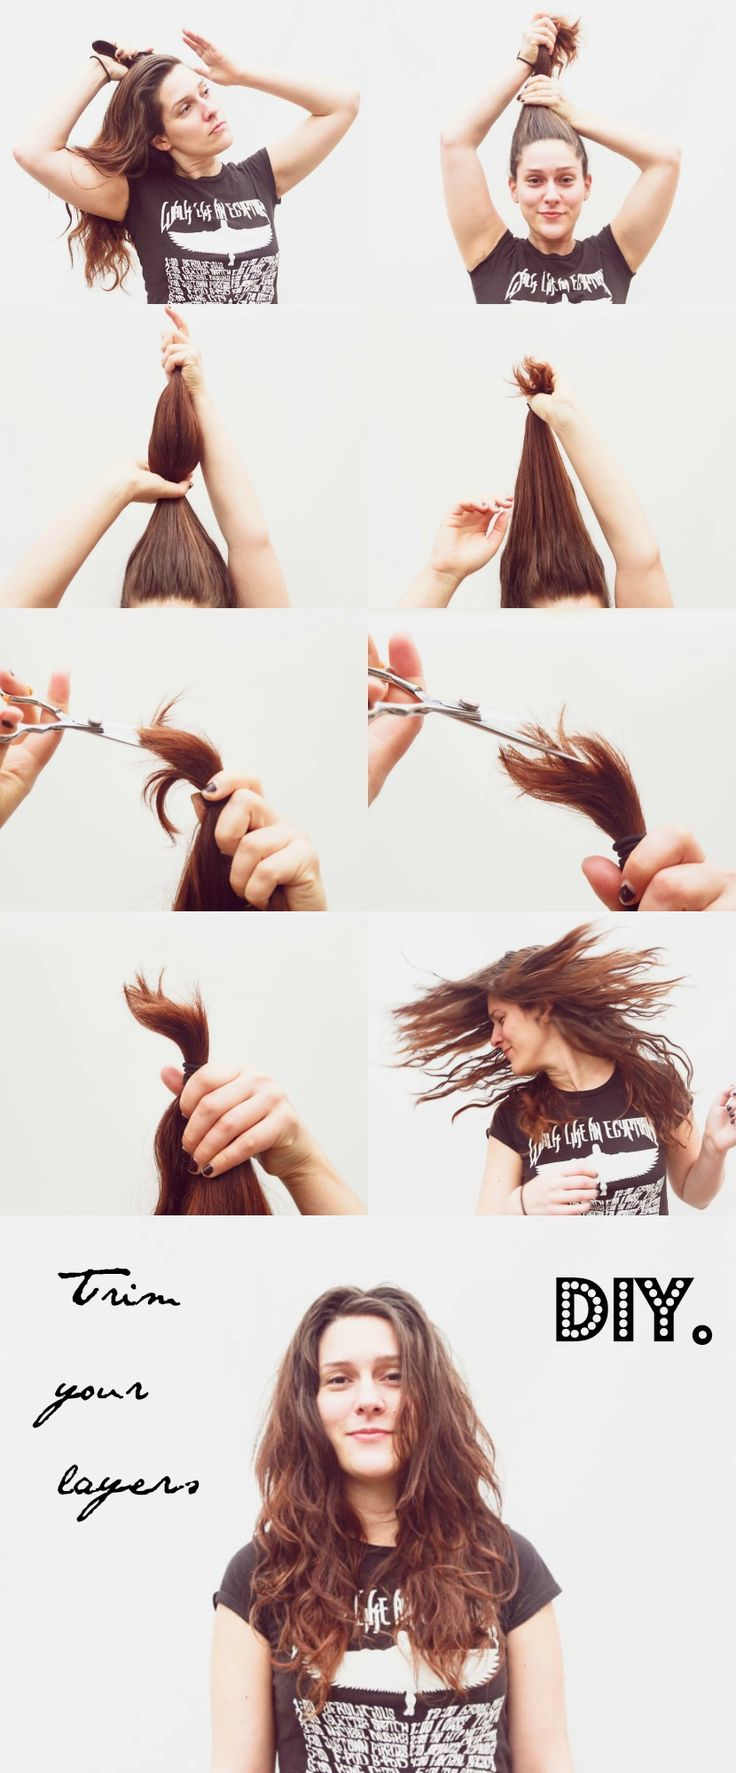 76 best reasons not to cut my hair images on pinterest | blonde hair